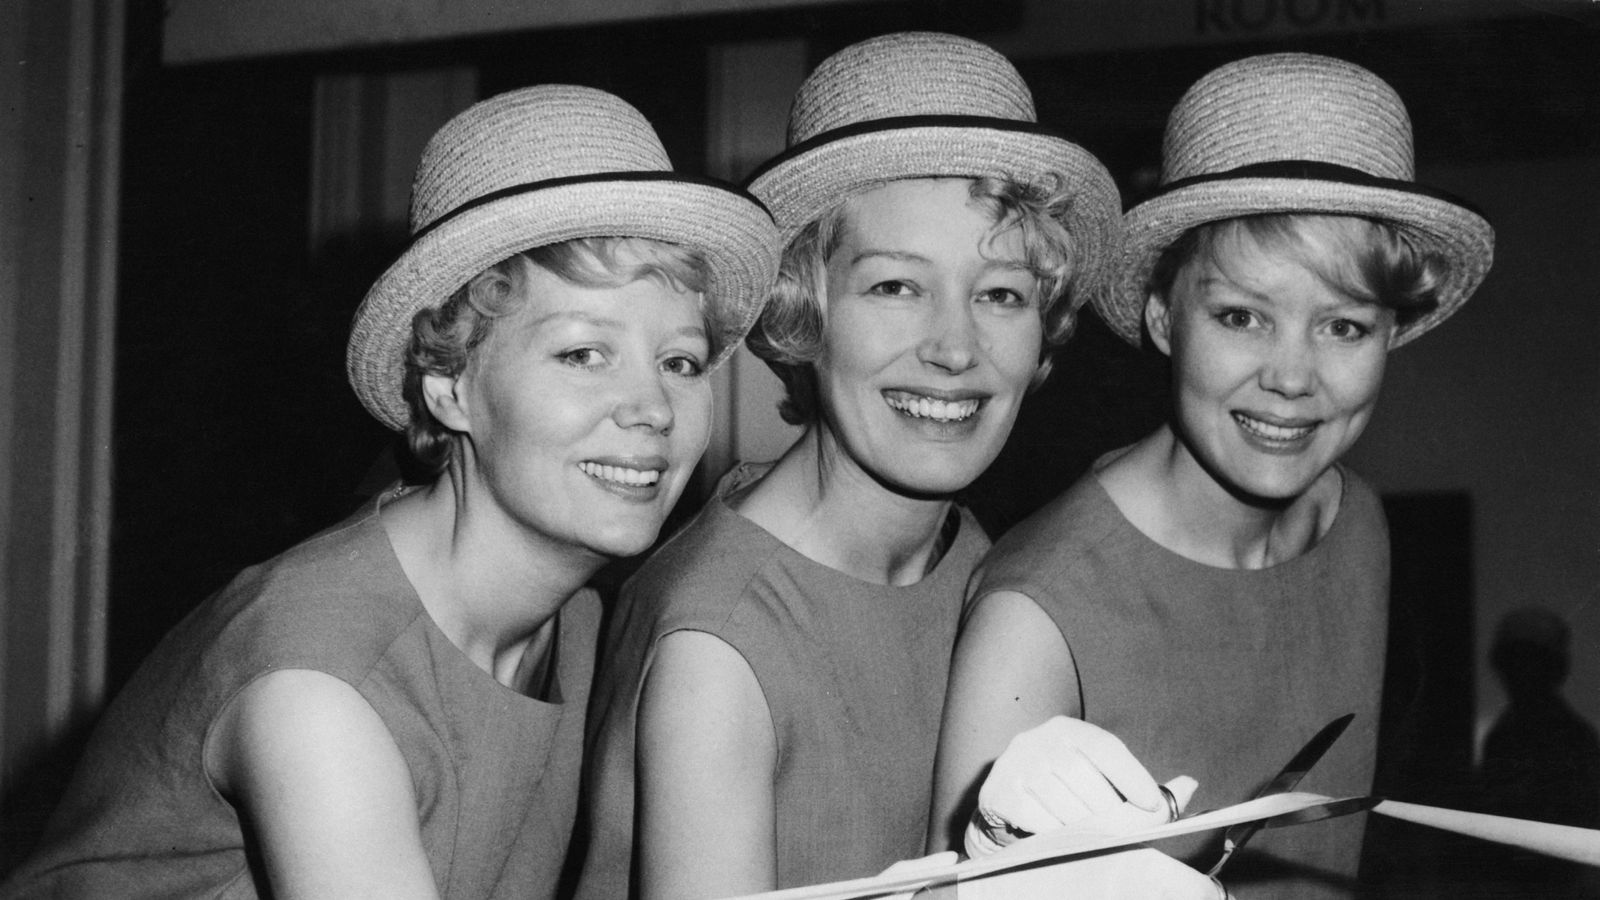 A Tribute To The Beverley Sisters' Joy